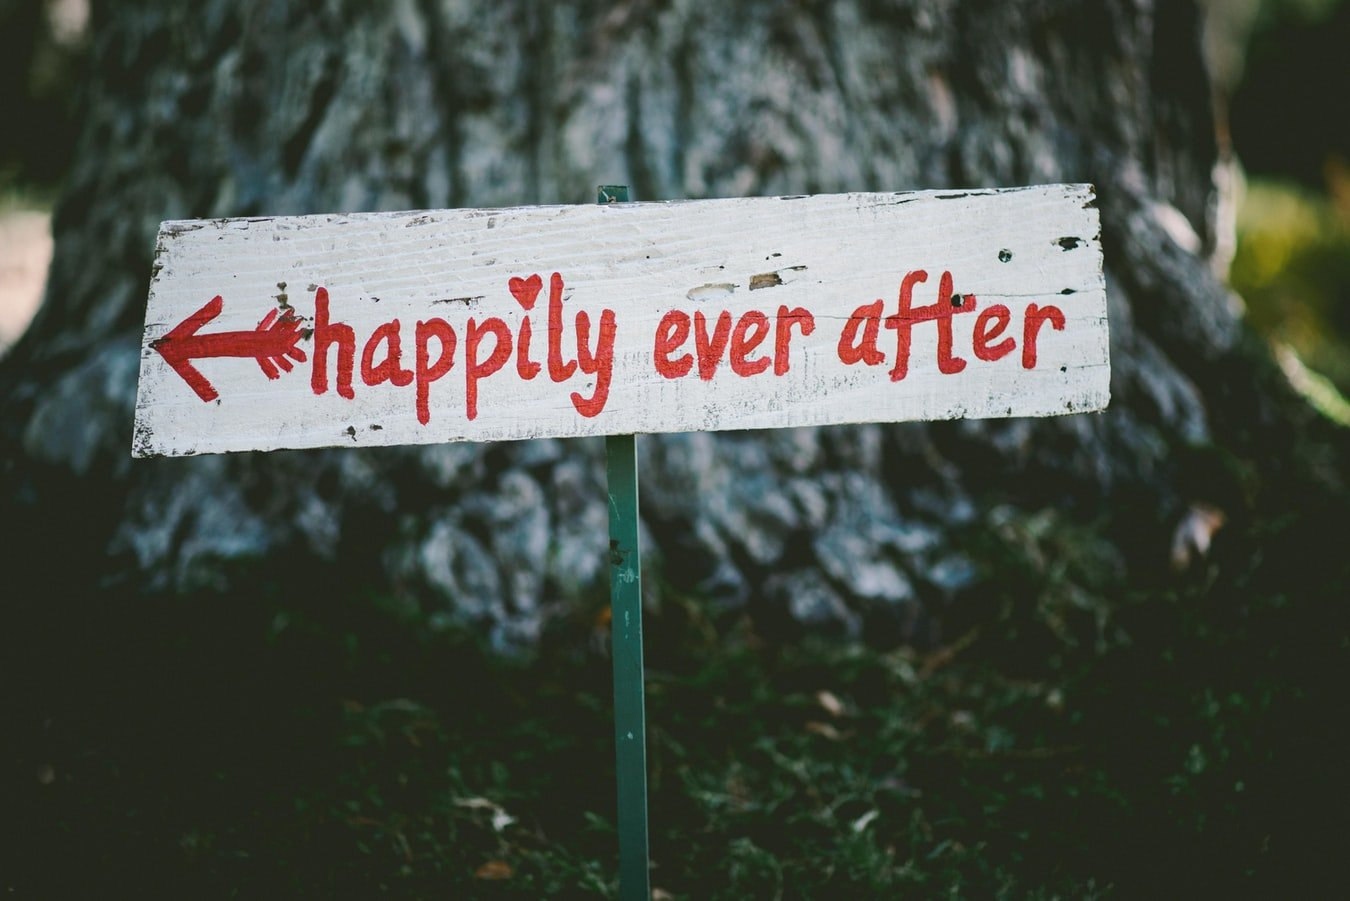 Happily ever after | Source: Unsplash